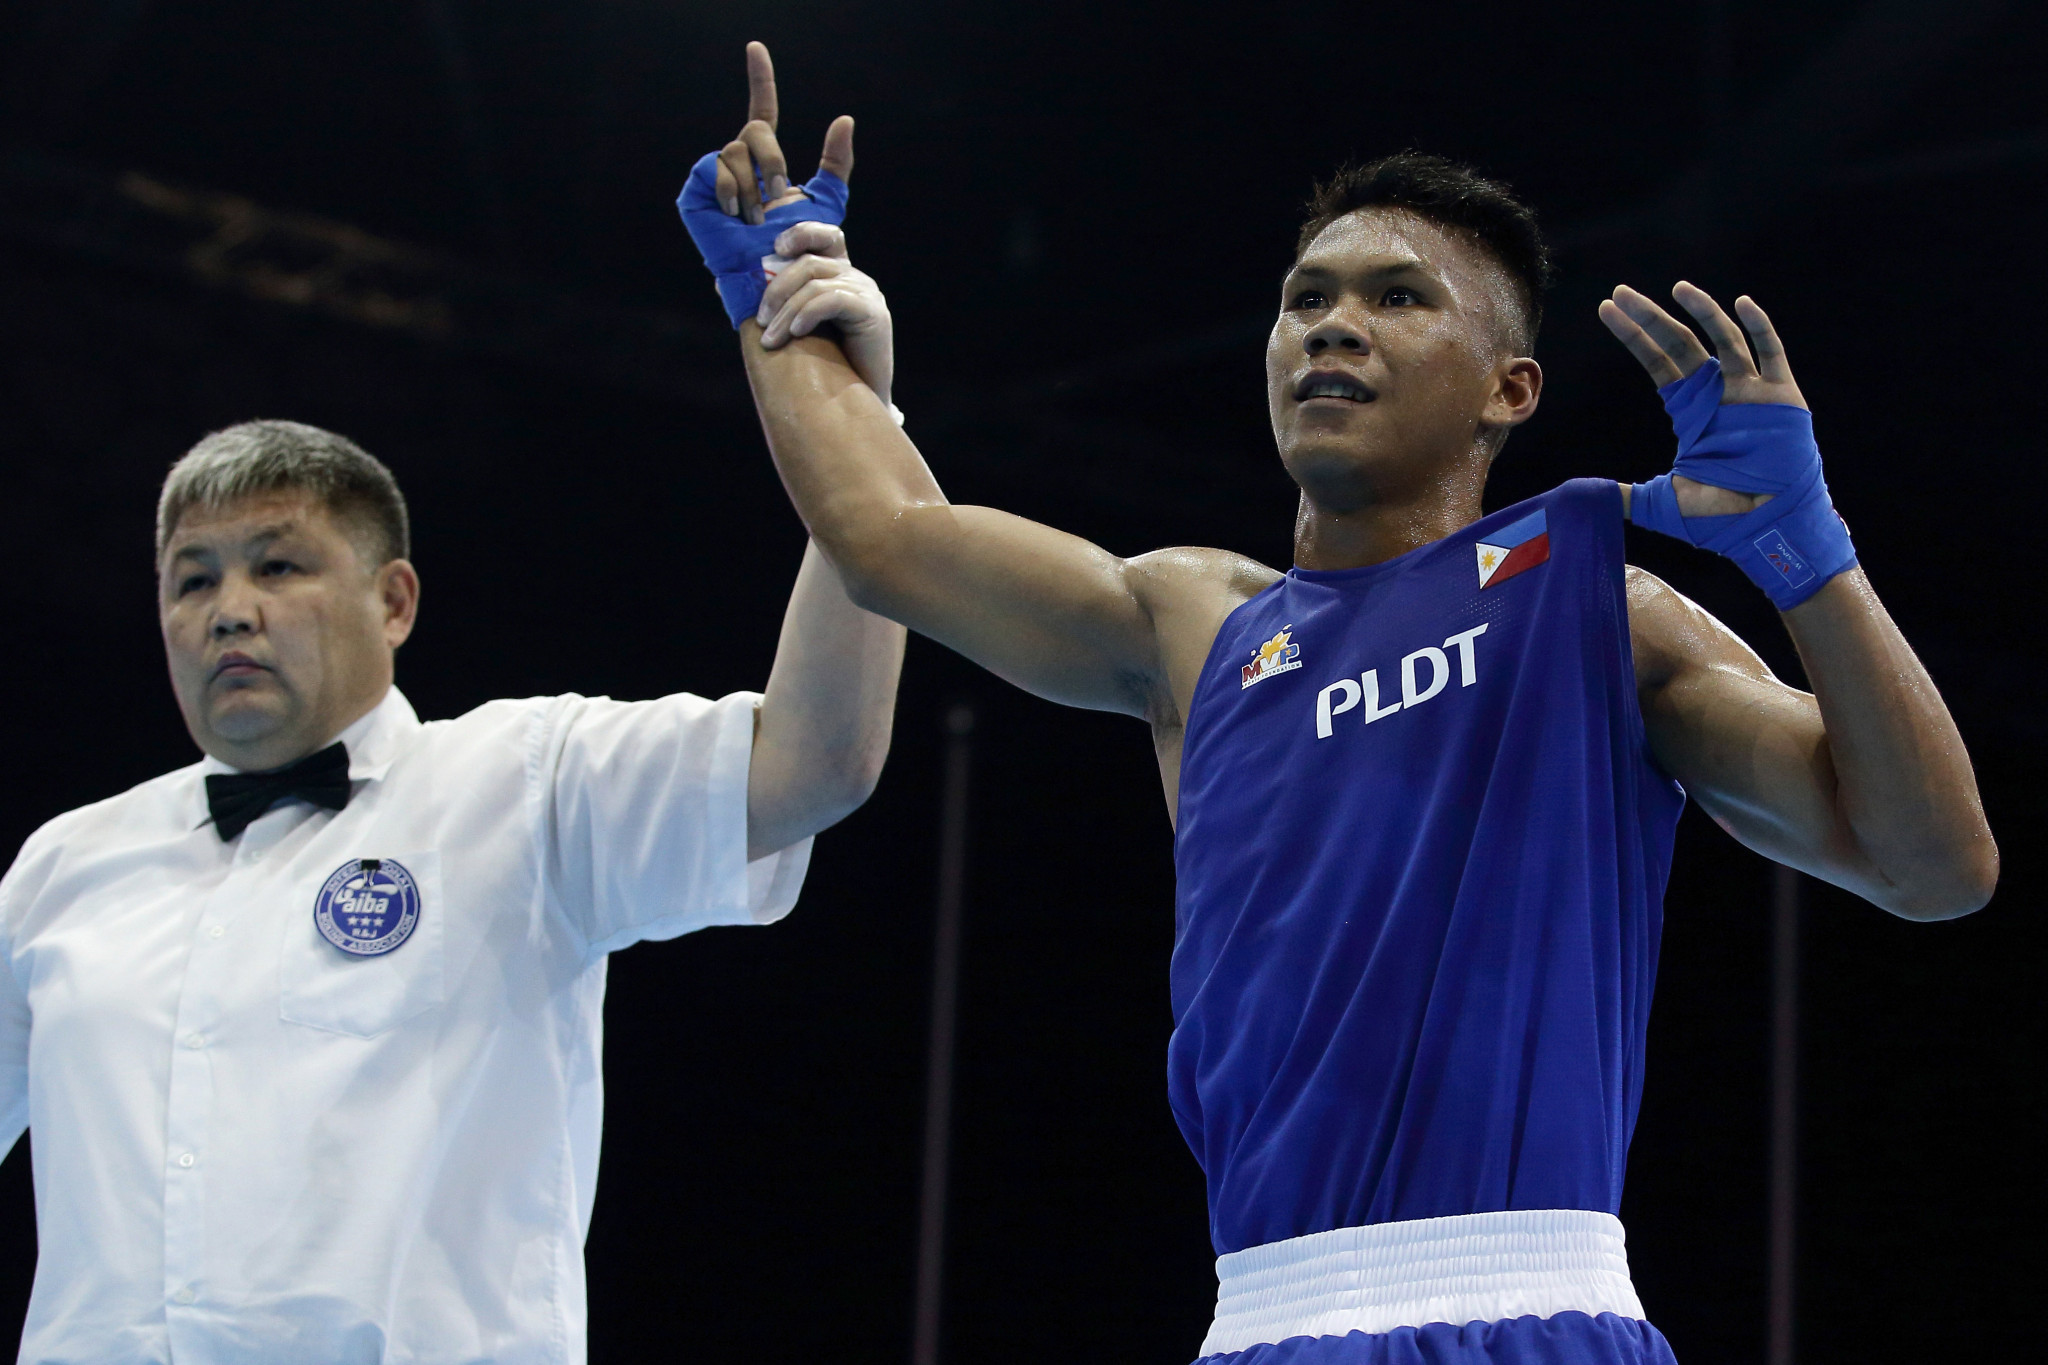 Boxer Eumir Marcial replaces pole vaulter EJ Obiena as Philipines flagbearer at Tokyo 2020